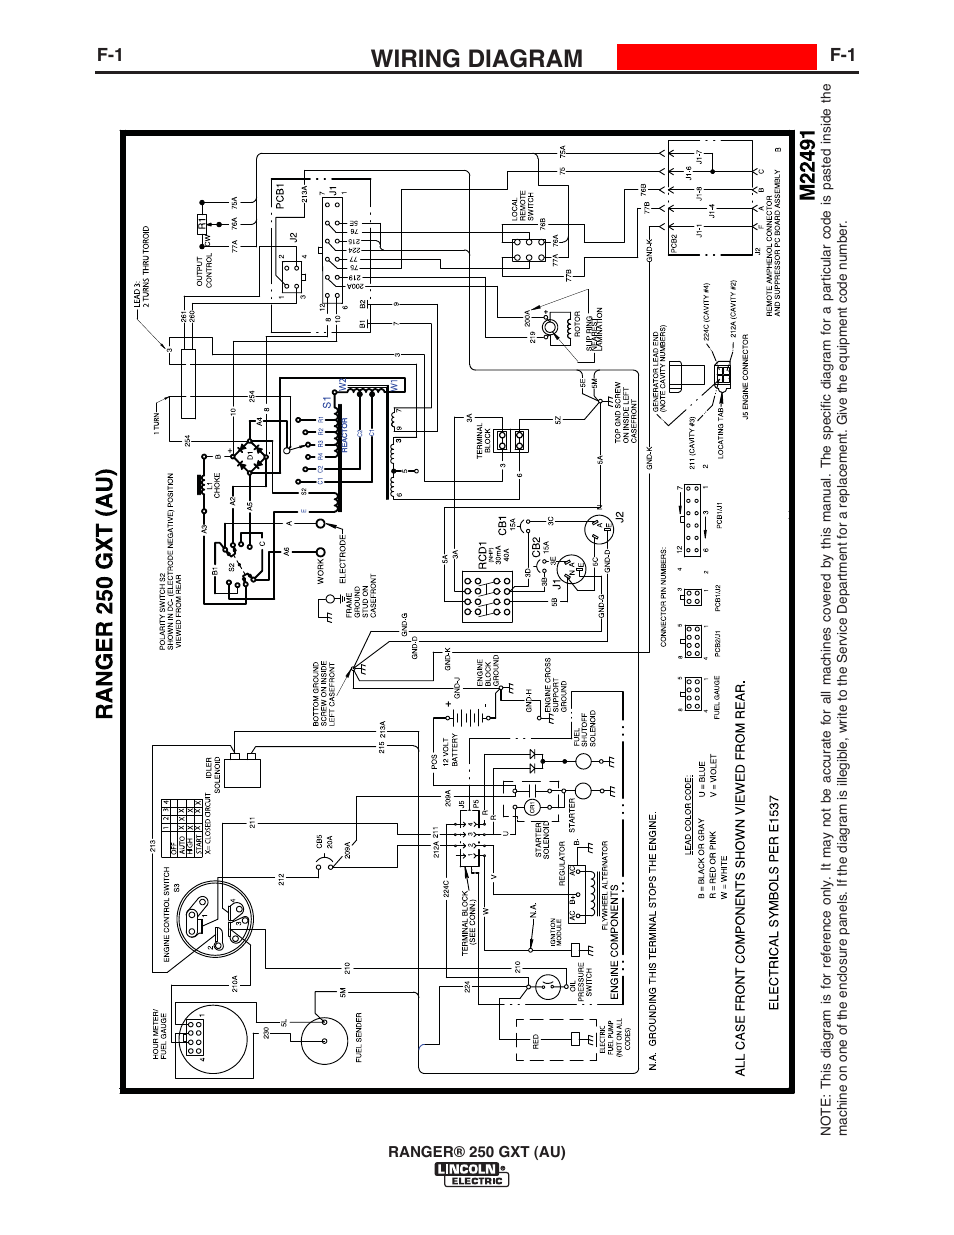 Craftsman Welder Wiring Diagram Lincoln Welder Wiring